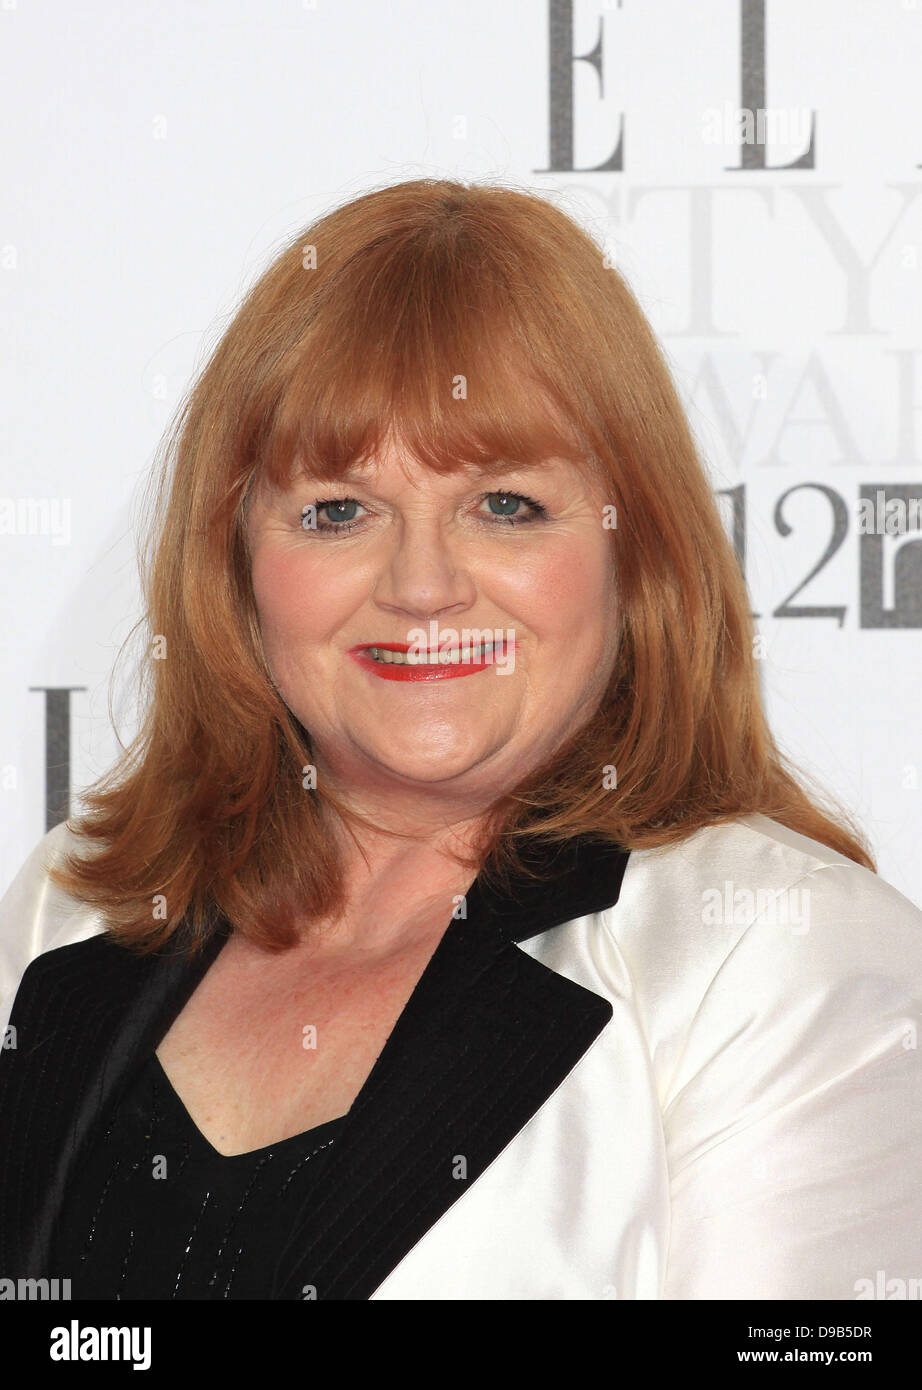 Lesley Nicol The Elle Style Awards 2012 held at The Savoy - Arrivals London, England - 13.02.12 - Stock Image